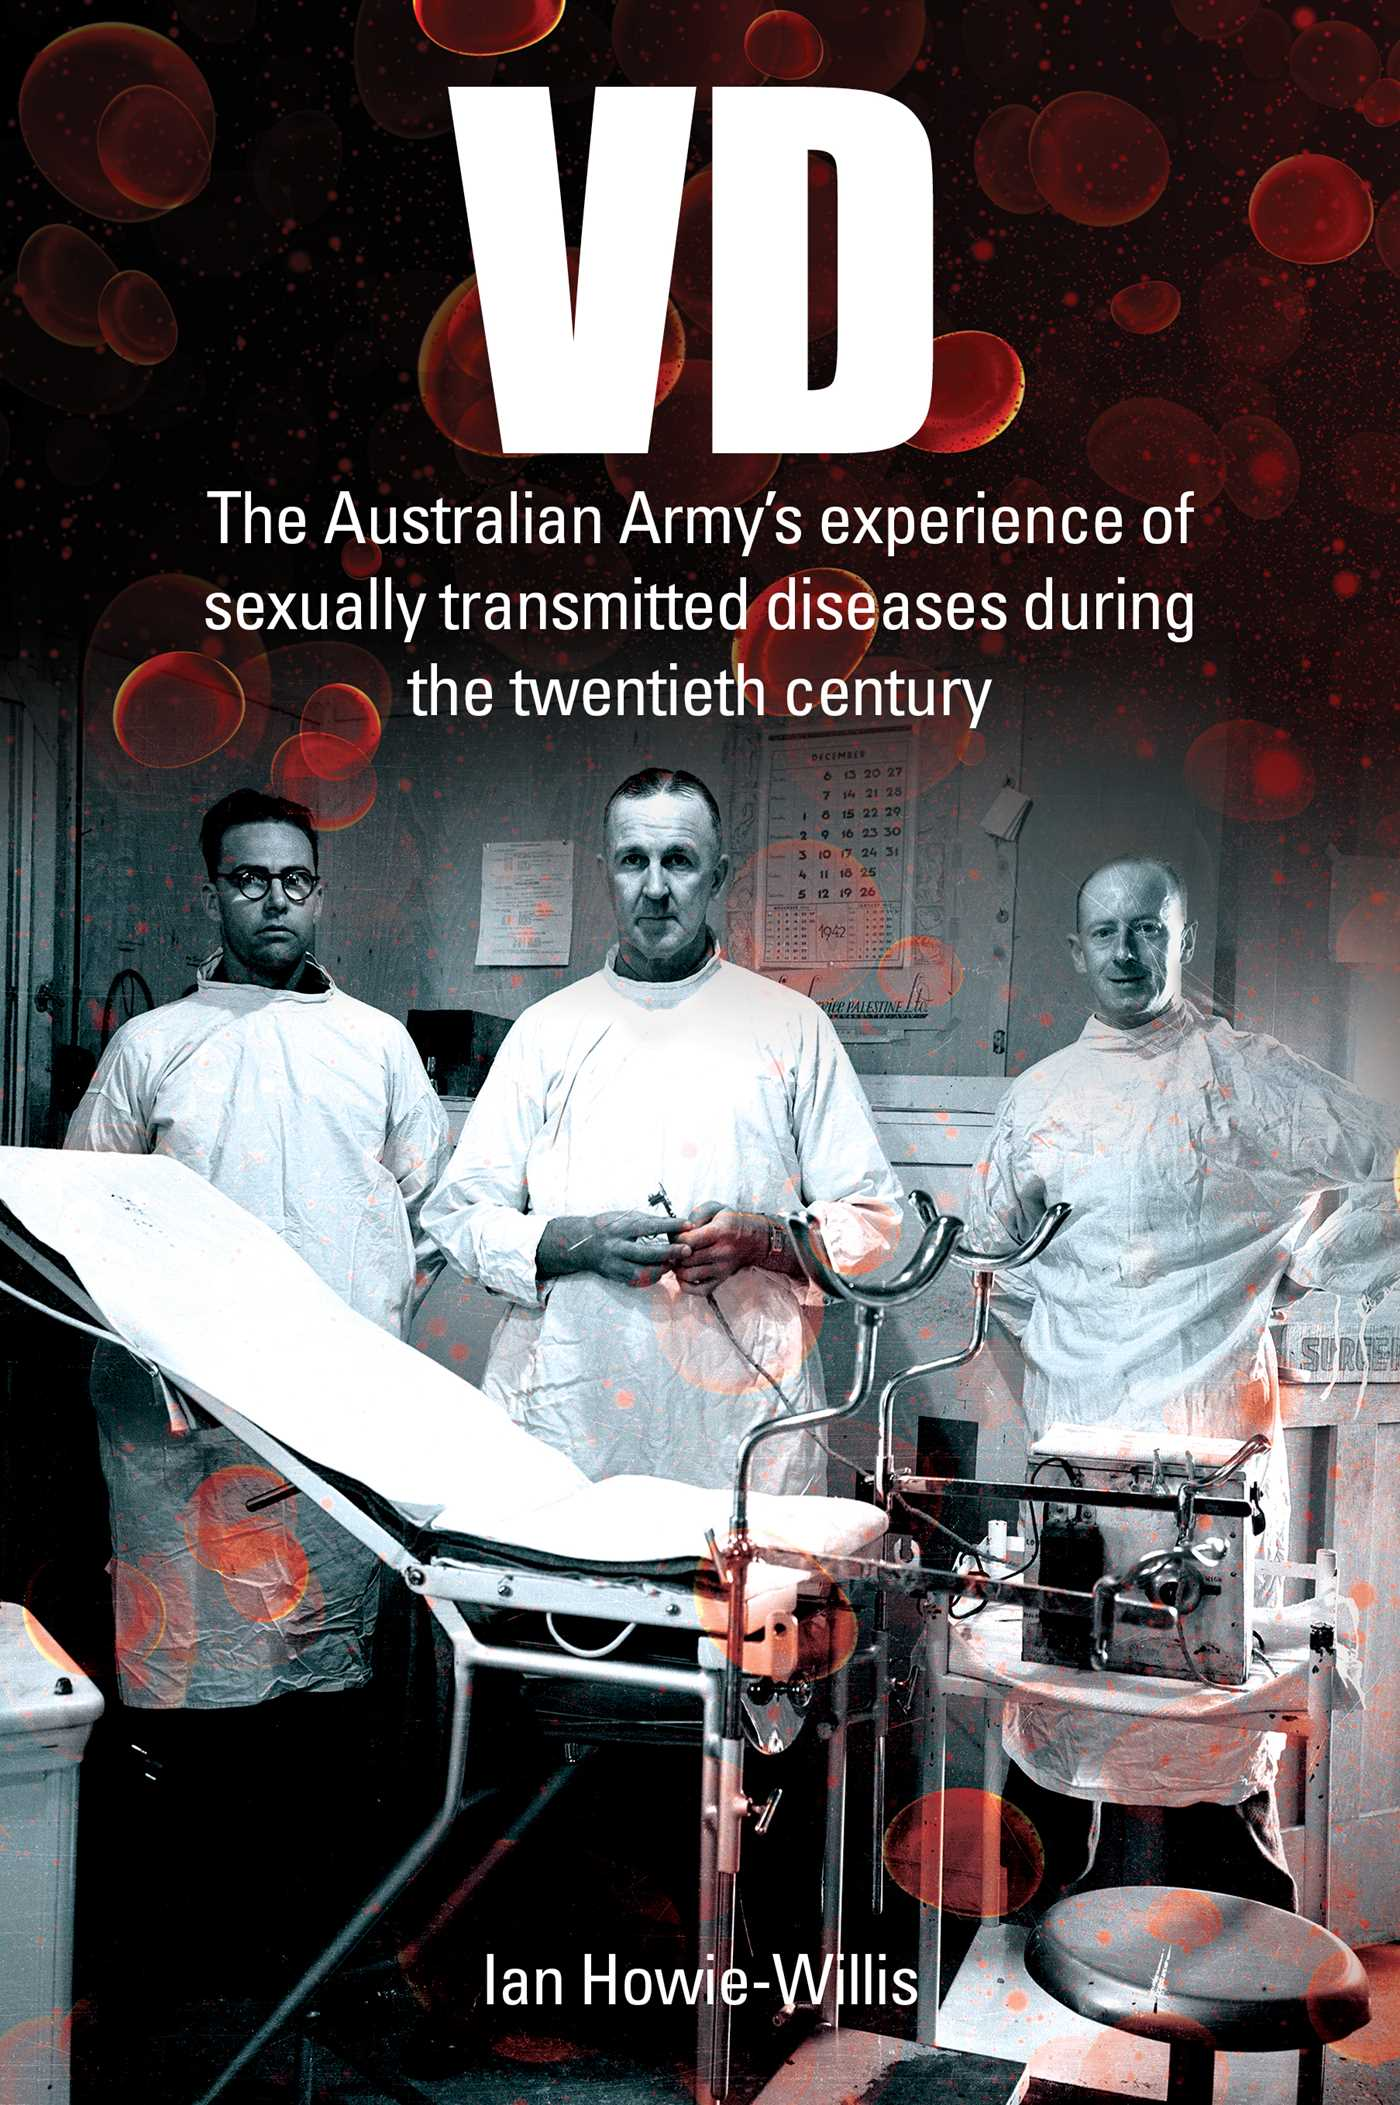 [PDF] [EPUB] VD: The Australian Army's experience of sexually transmitted diseases during the twentieth century Download by Ian Howie-Willis